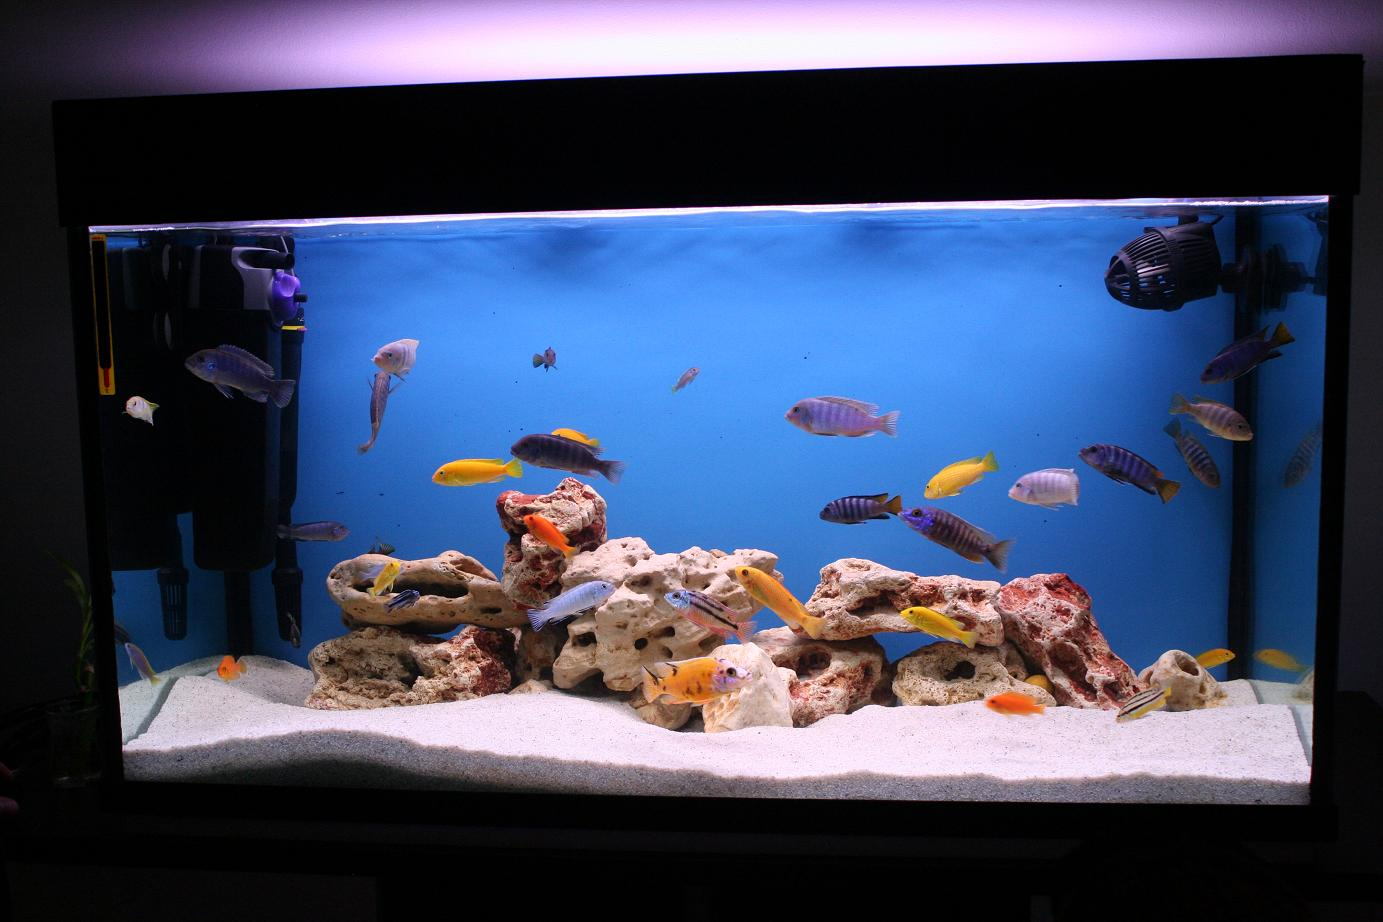 Fish tank home made decorations 88391 mission spot dorrrrrrr for Aquarium decoration ideas